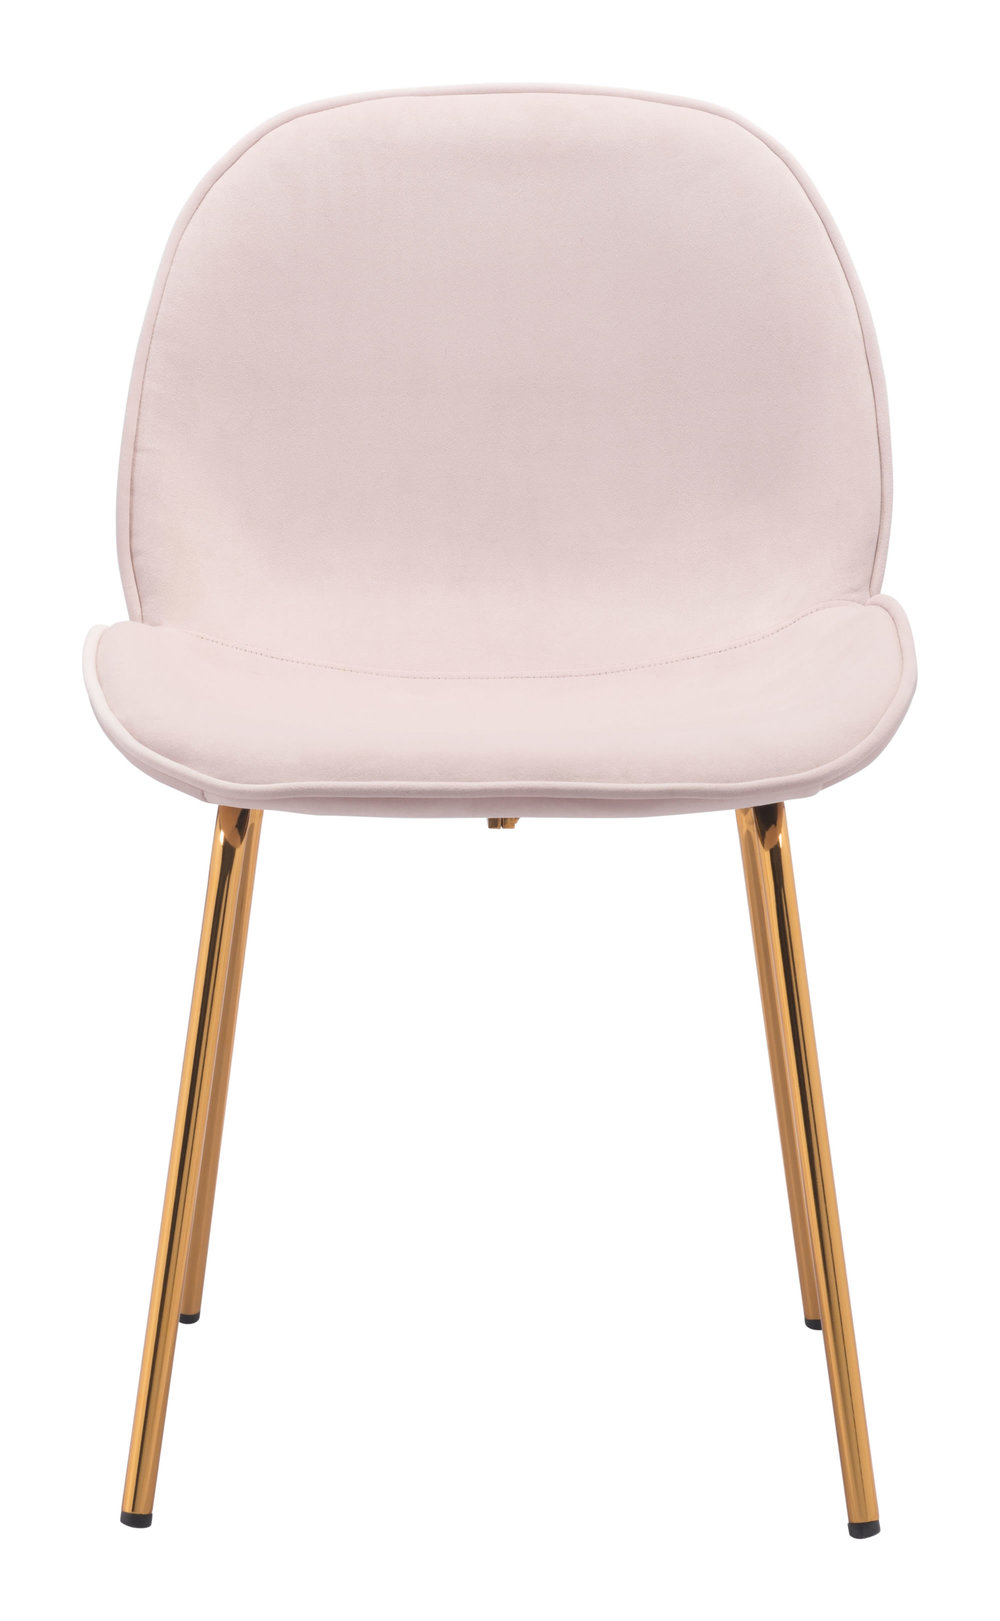 Zuo Modern Contemporary - Siena Dining Chair - Set of 2 - Rose Pink